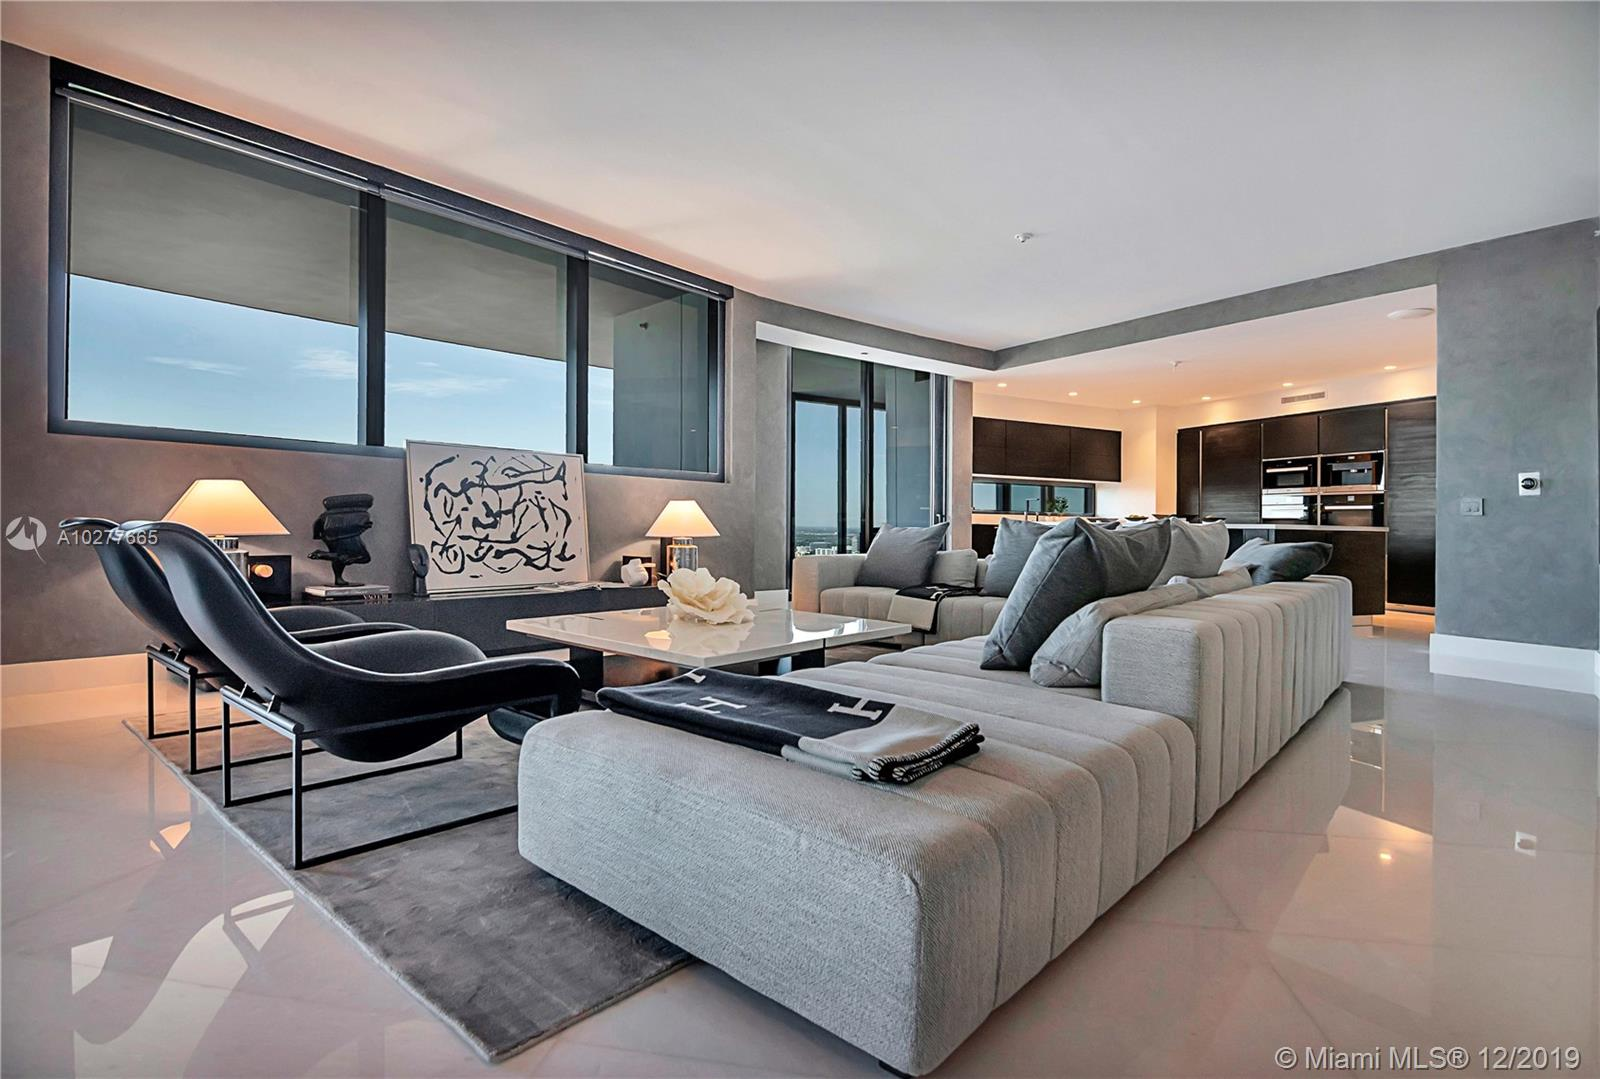 18555 Collins Ave, Unit #3503 Luxury Real Estate